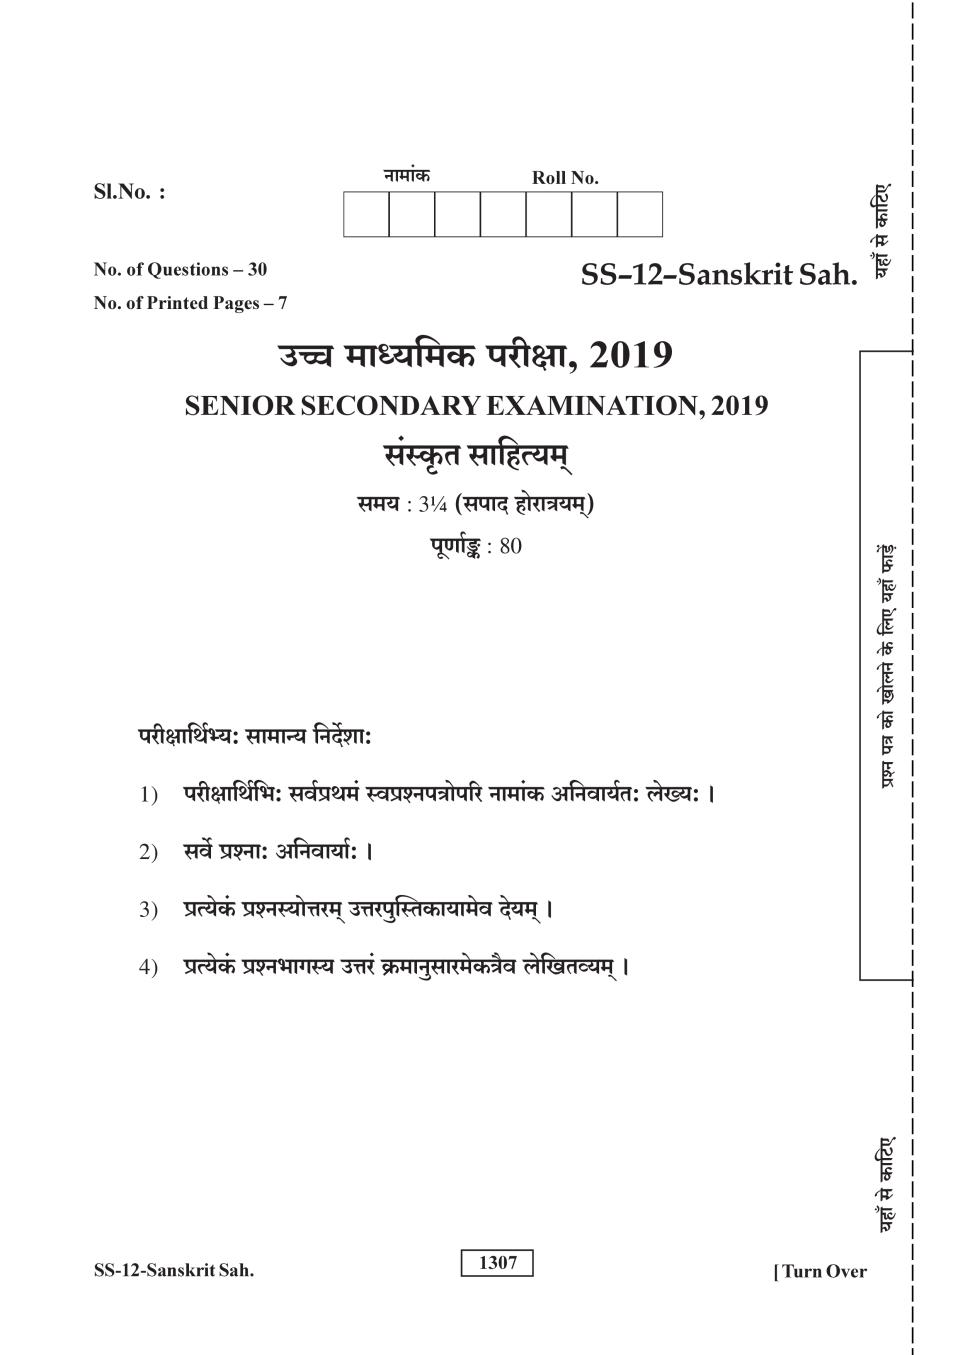 Rajasthan Board Sr. Secondary Sanskrit Sahitya Question Paper